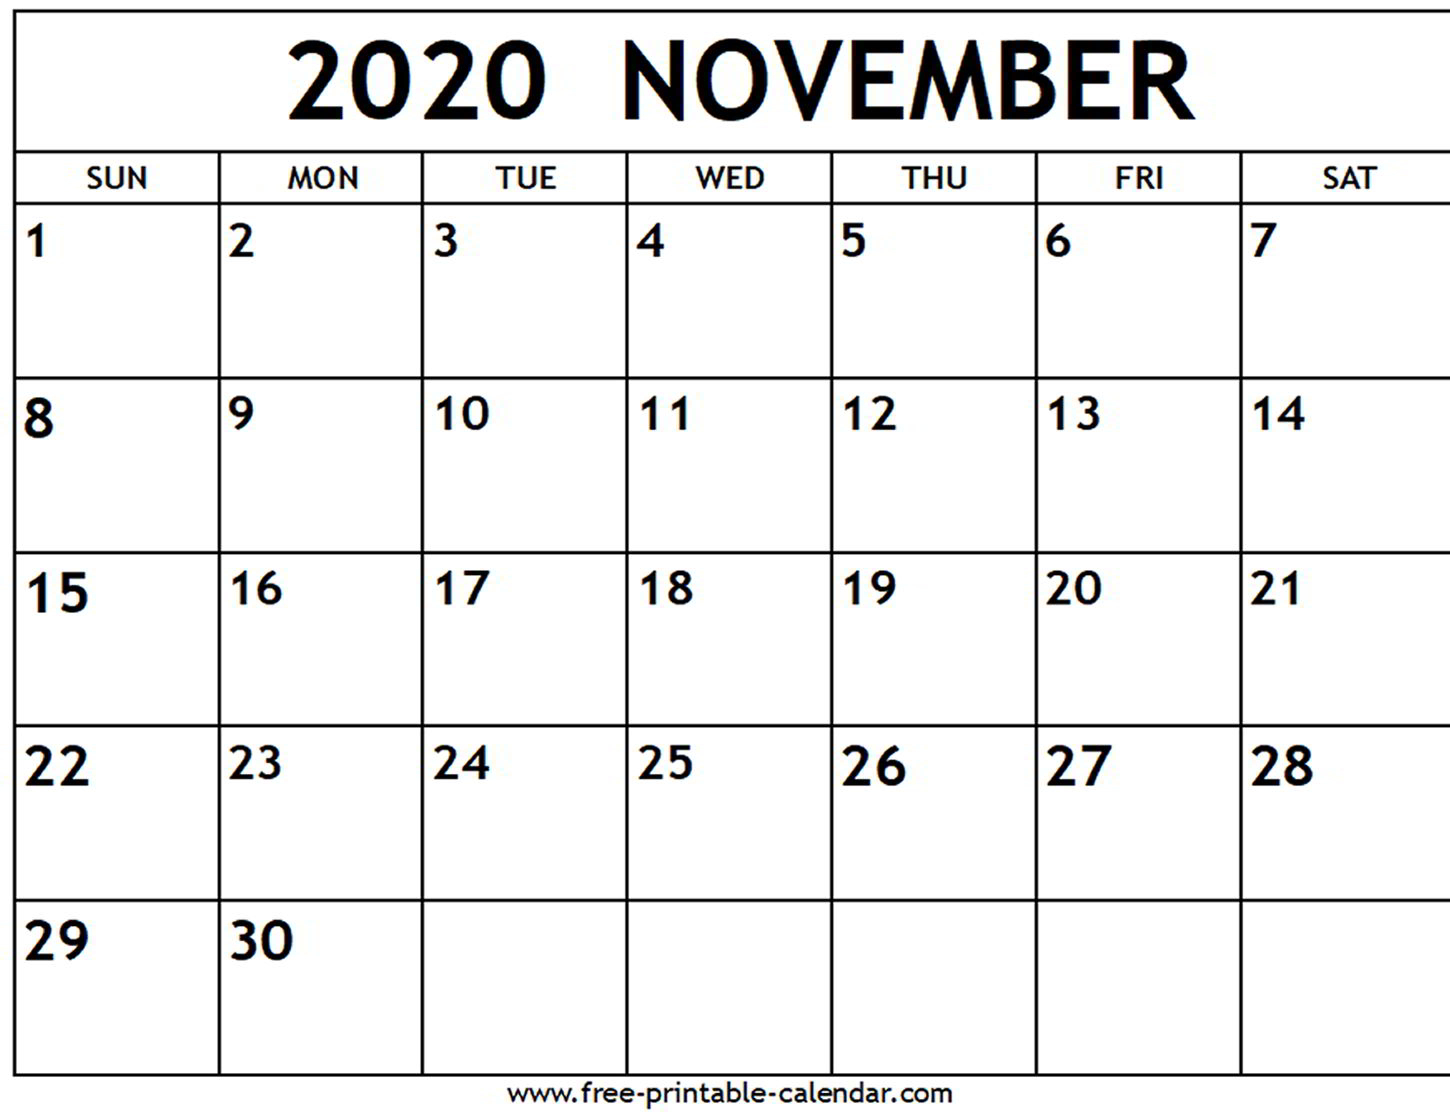 November 2020 Calendar With Holidays Printable - Wpart.co